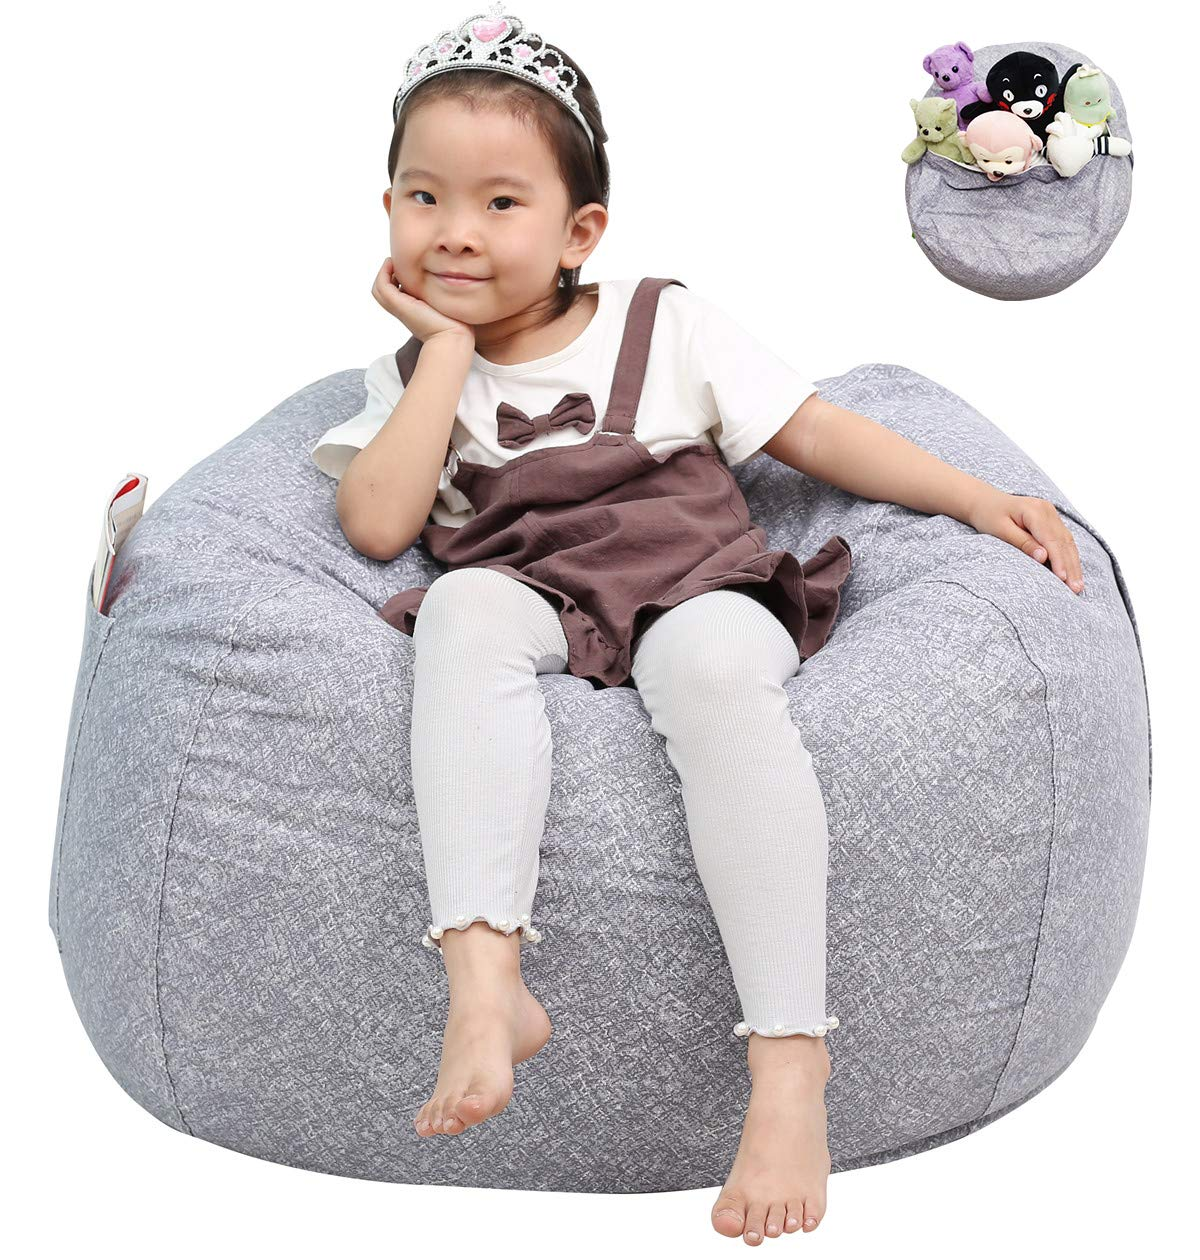 Great Eagle Stuffed Animal Storage Bean Bag Chair Cover 38x38 Inches Extra Large Cotton Canvas   Bean Bag Chair for Kids, Toddlers and Teens(Boys or Girls) Toy Storage Bag (Grey/Marblings) by Great Eagle